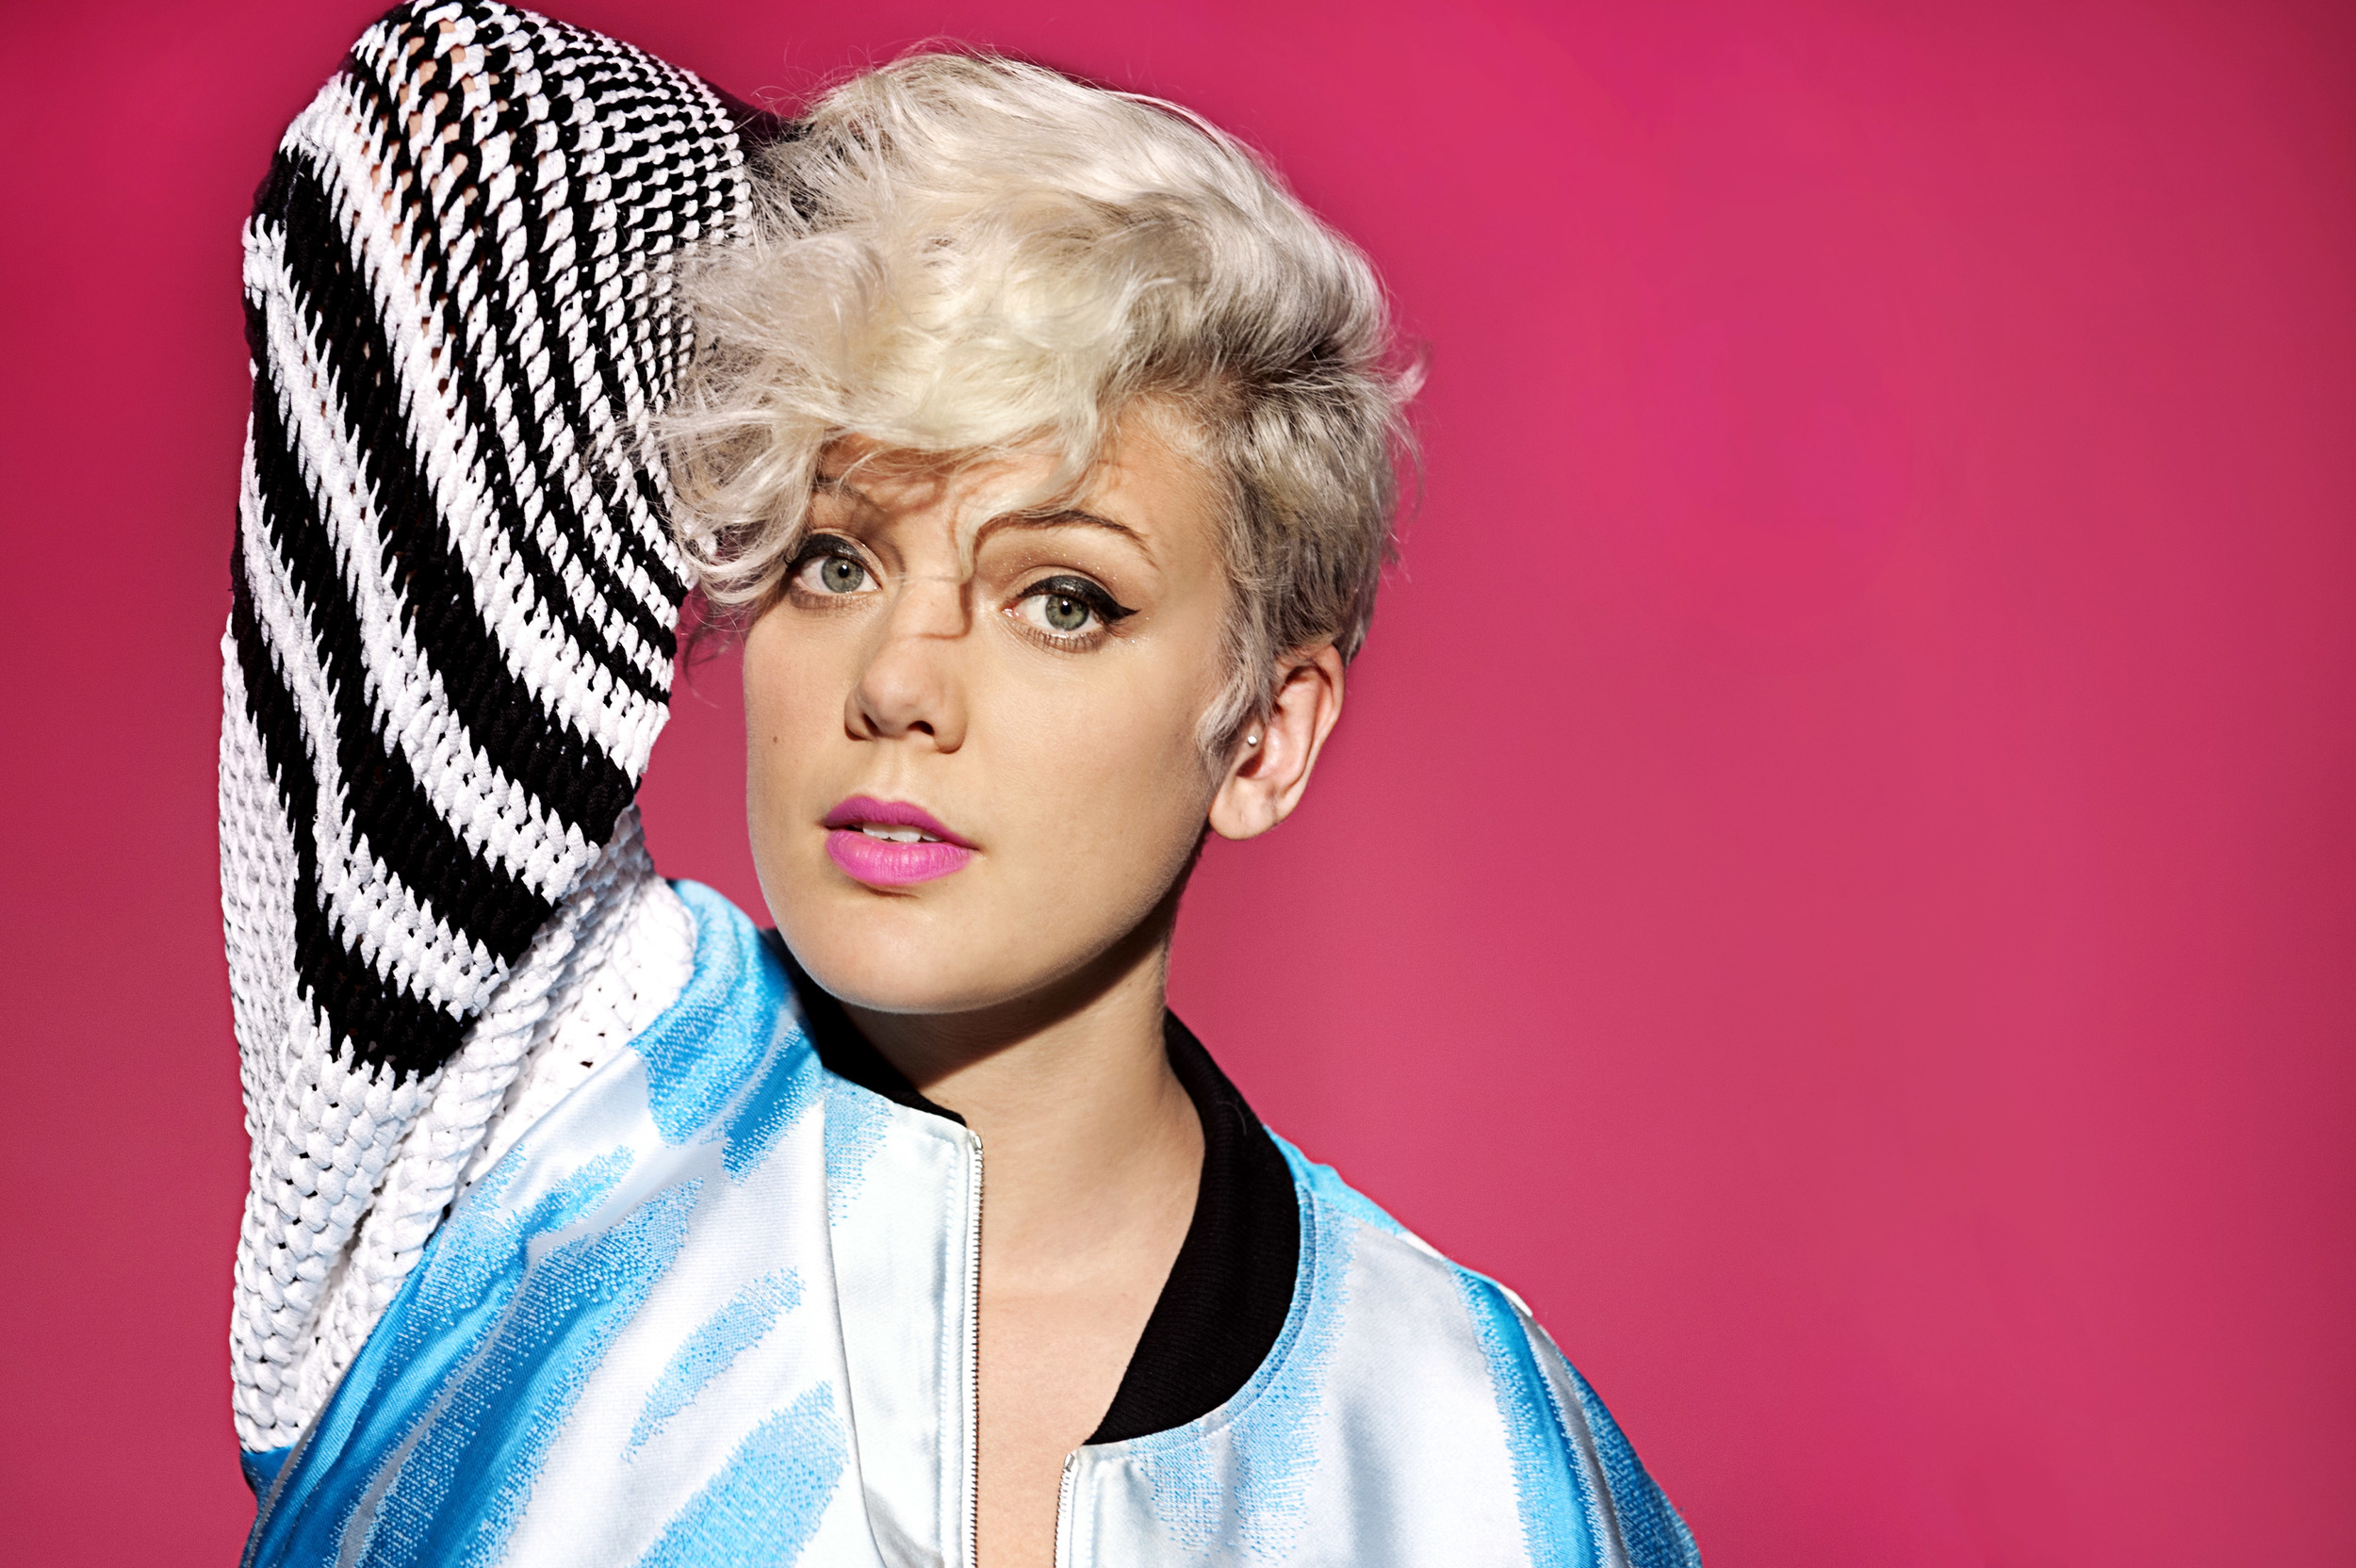 BettyWho_Portraits_092614_030.jpg